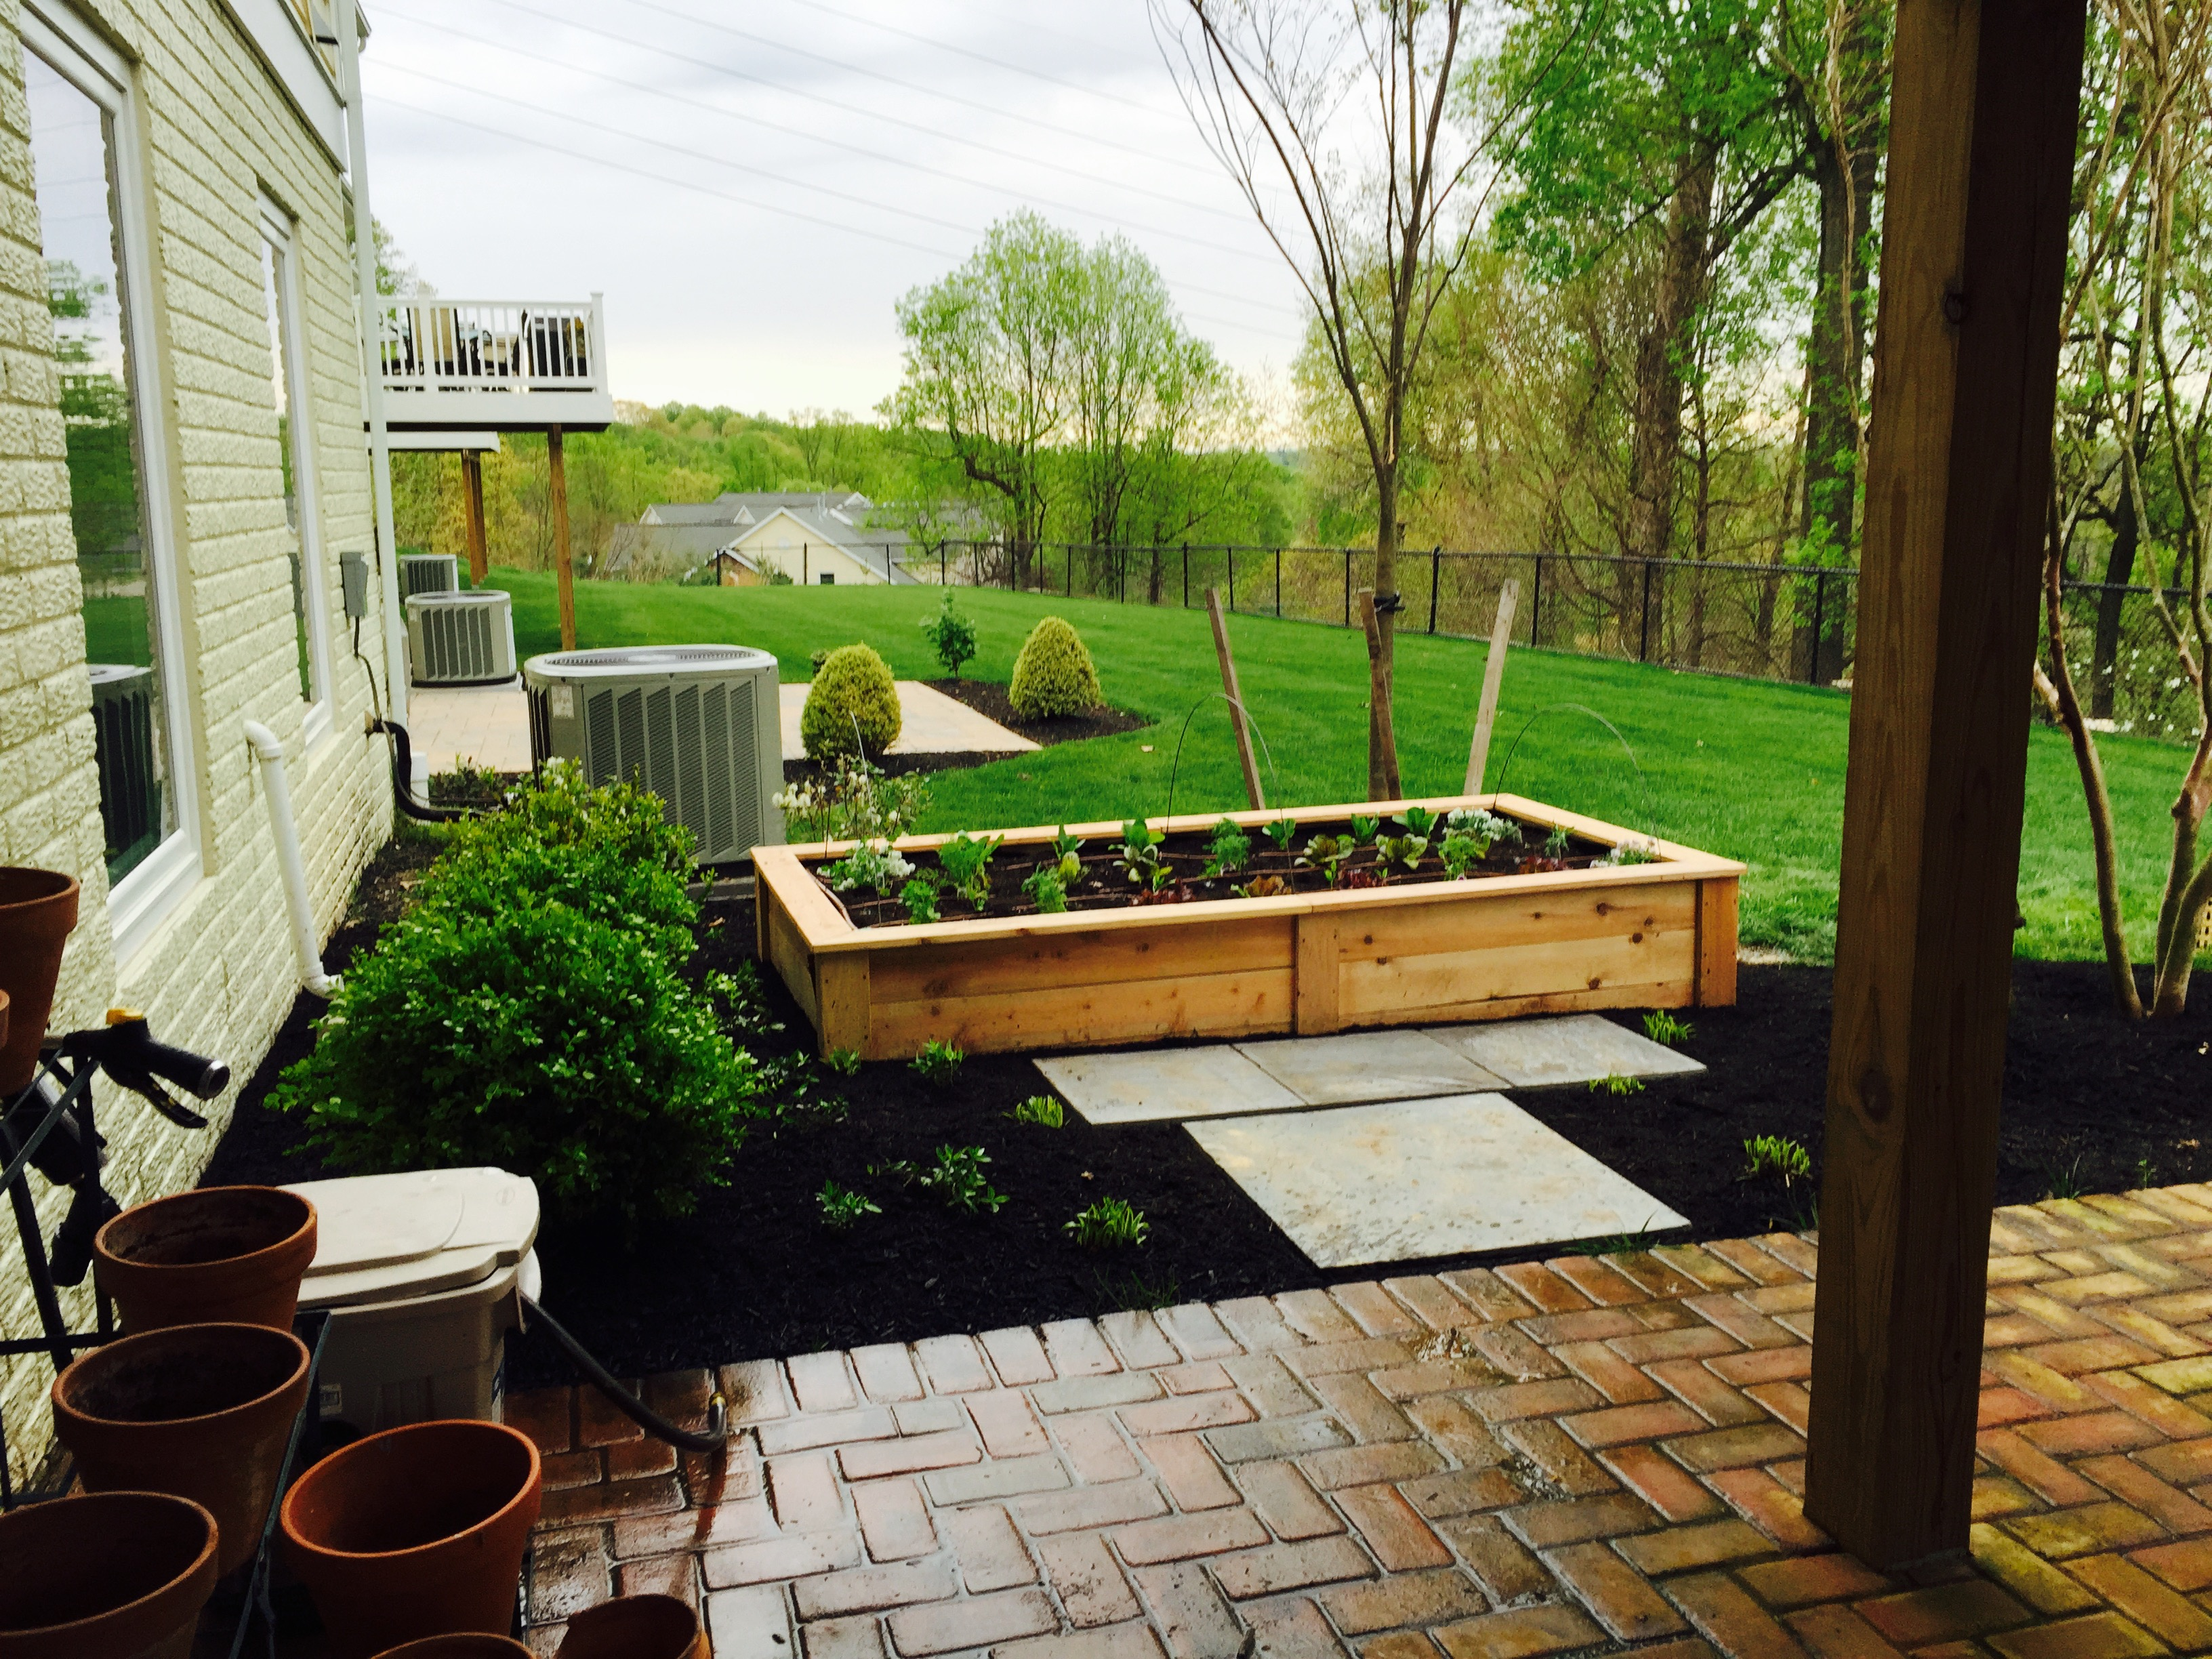 Mullan Nursery Co | Baltimore County, Maryland | Landscape & Hardscape | Kitchen Garden, Vegetable Veggie Gardens, Raised Beds, Organic